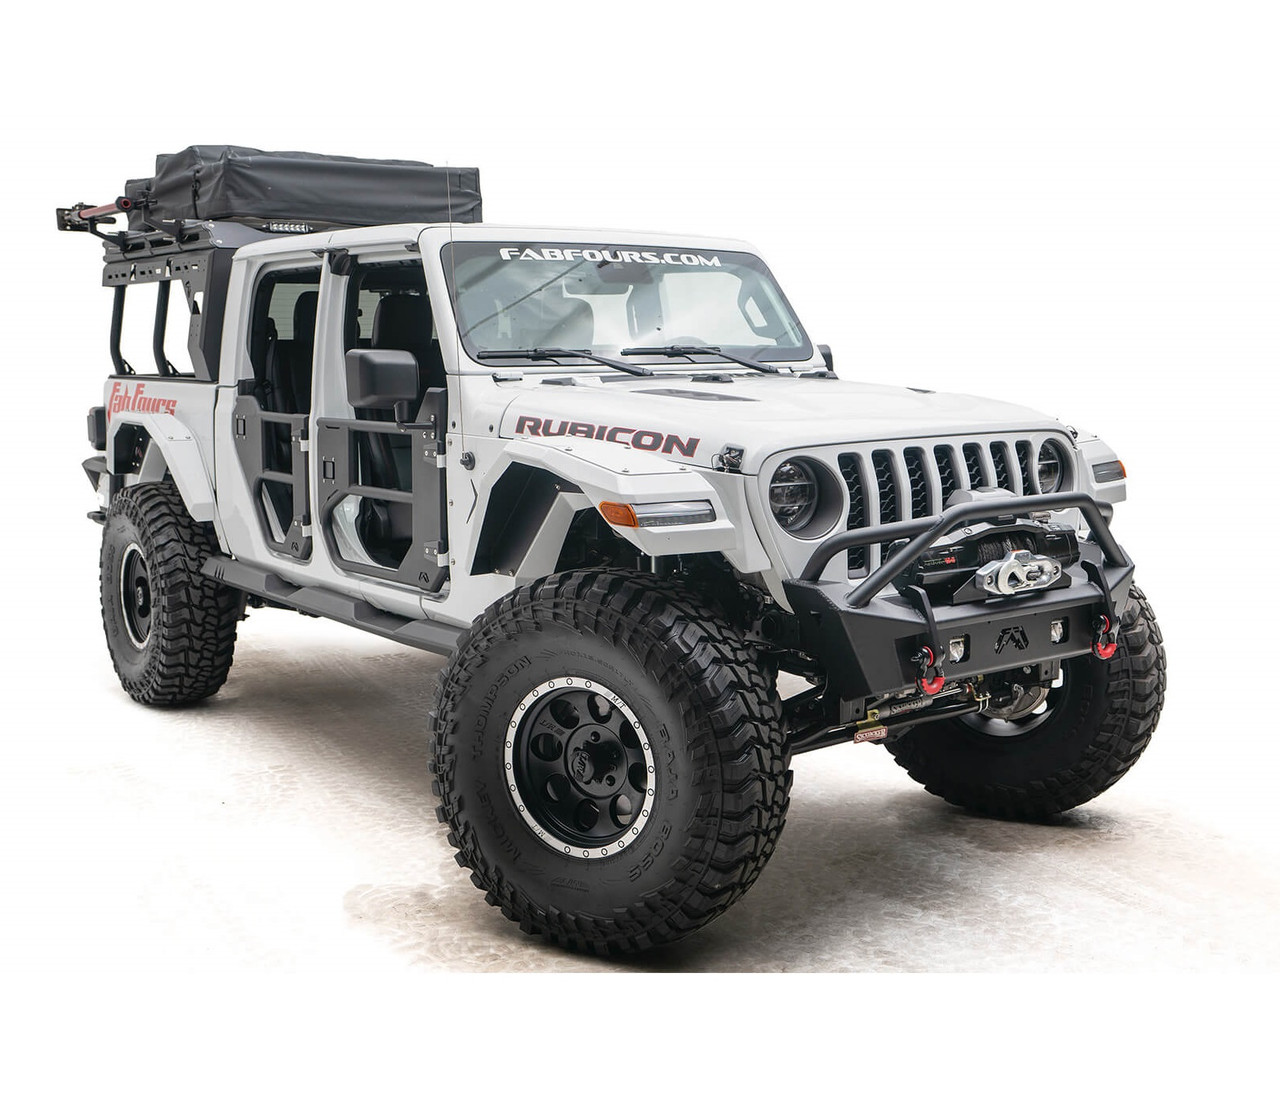 Fab Fours Stubby Pre-Runner Guard Front Bumper For Jeep Wrangler JL / Gladiator JT - JL18-B4752-1